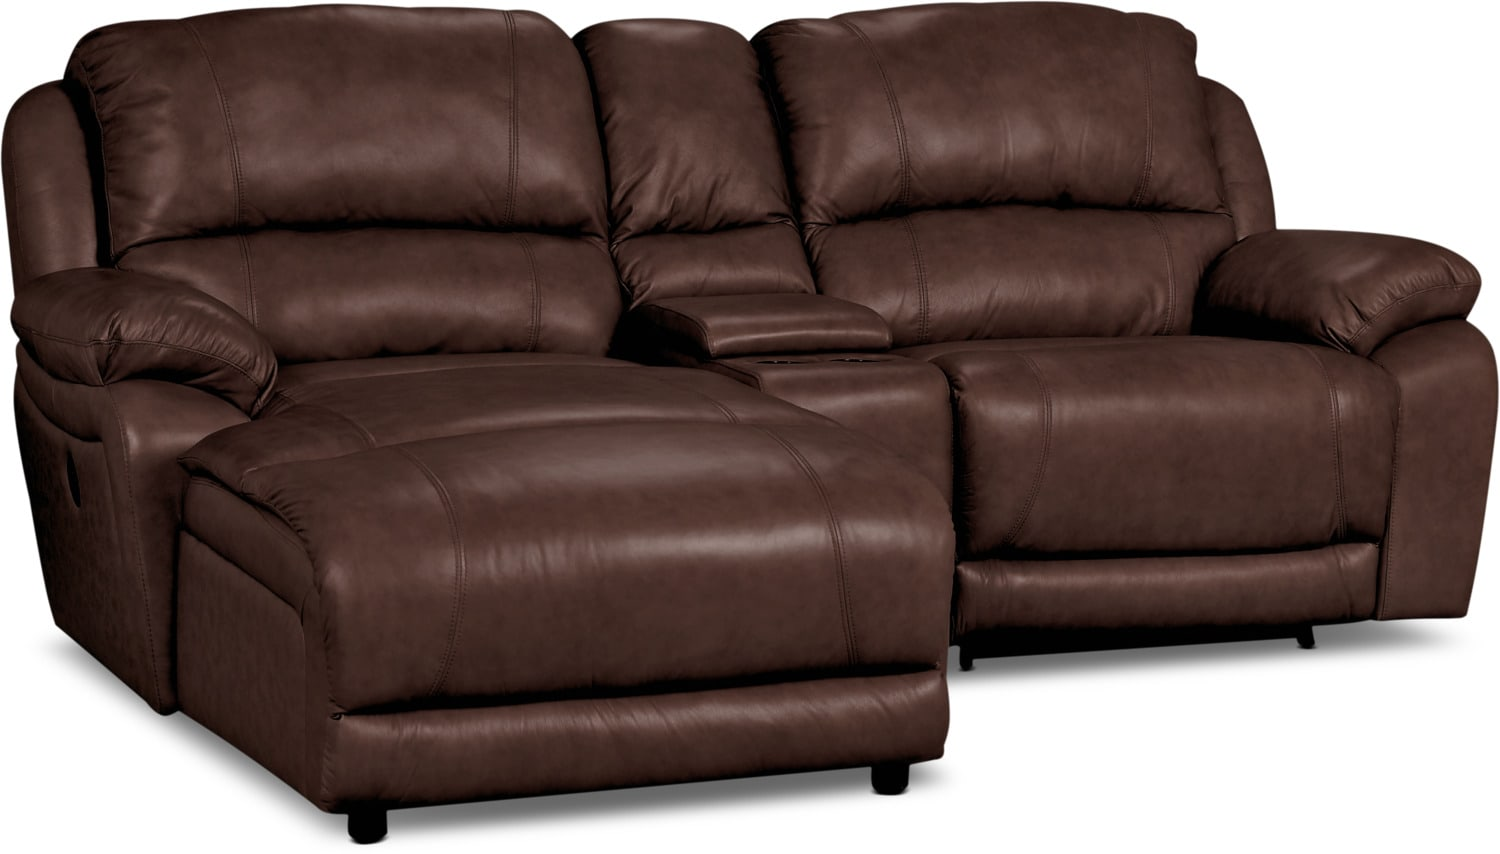 Marco Genuine Leather 3-Piece Sectional with Chaise, Power Recliner, and Console– Chocolate